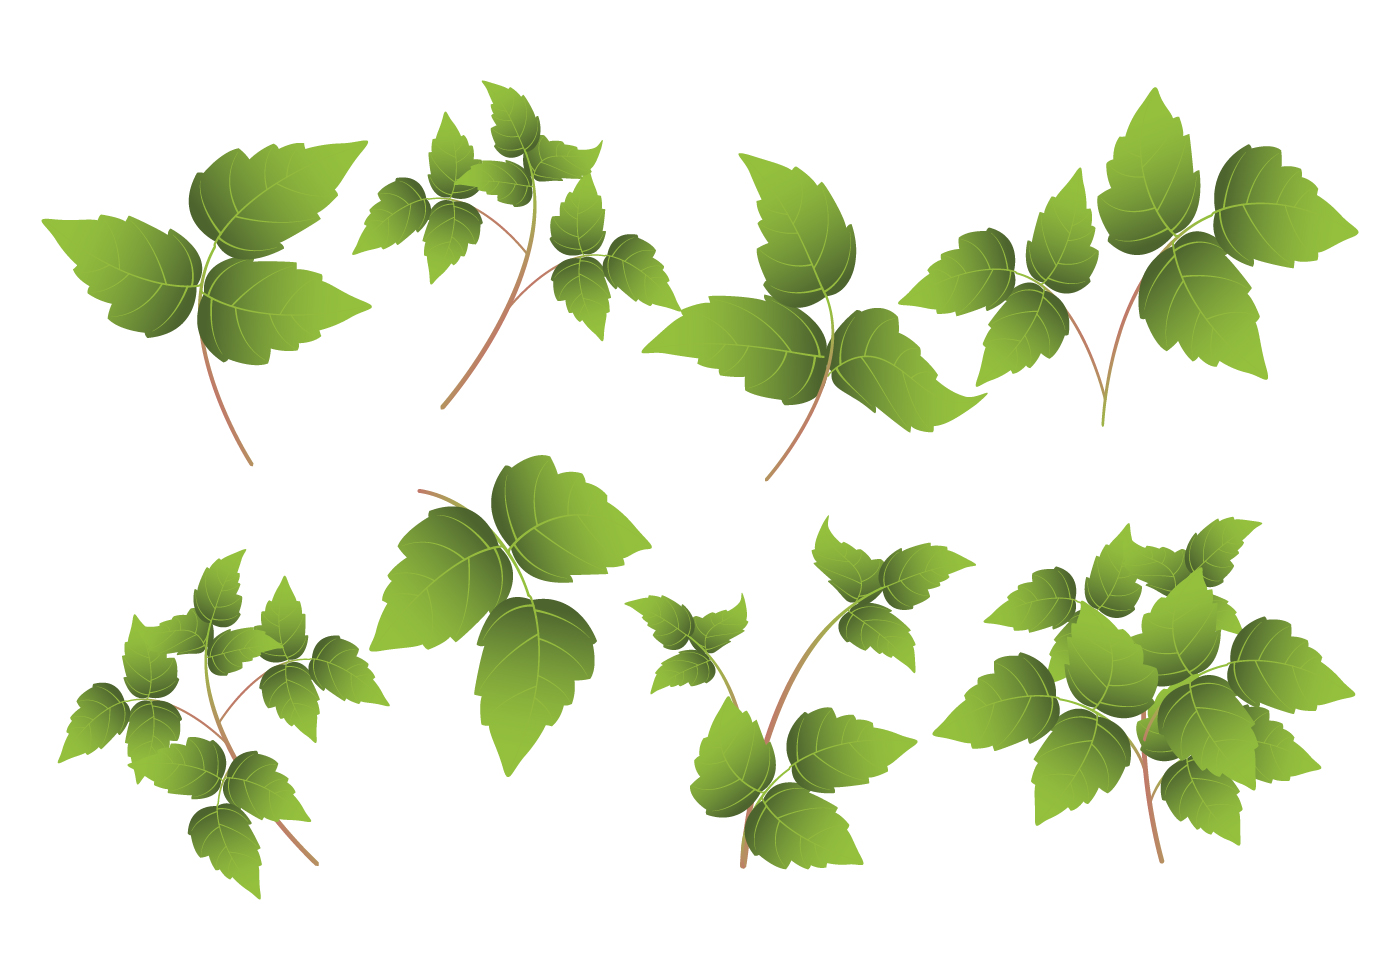 Poison Ivy Leaf - Download Free Vector Art, Stock Graphics ...